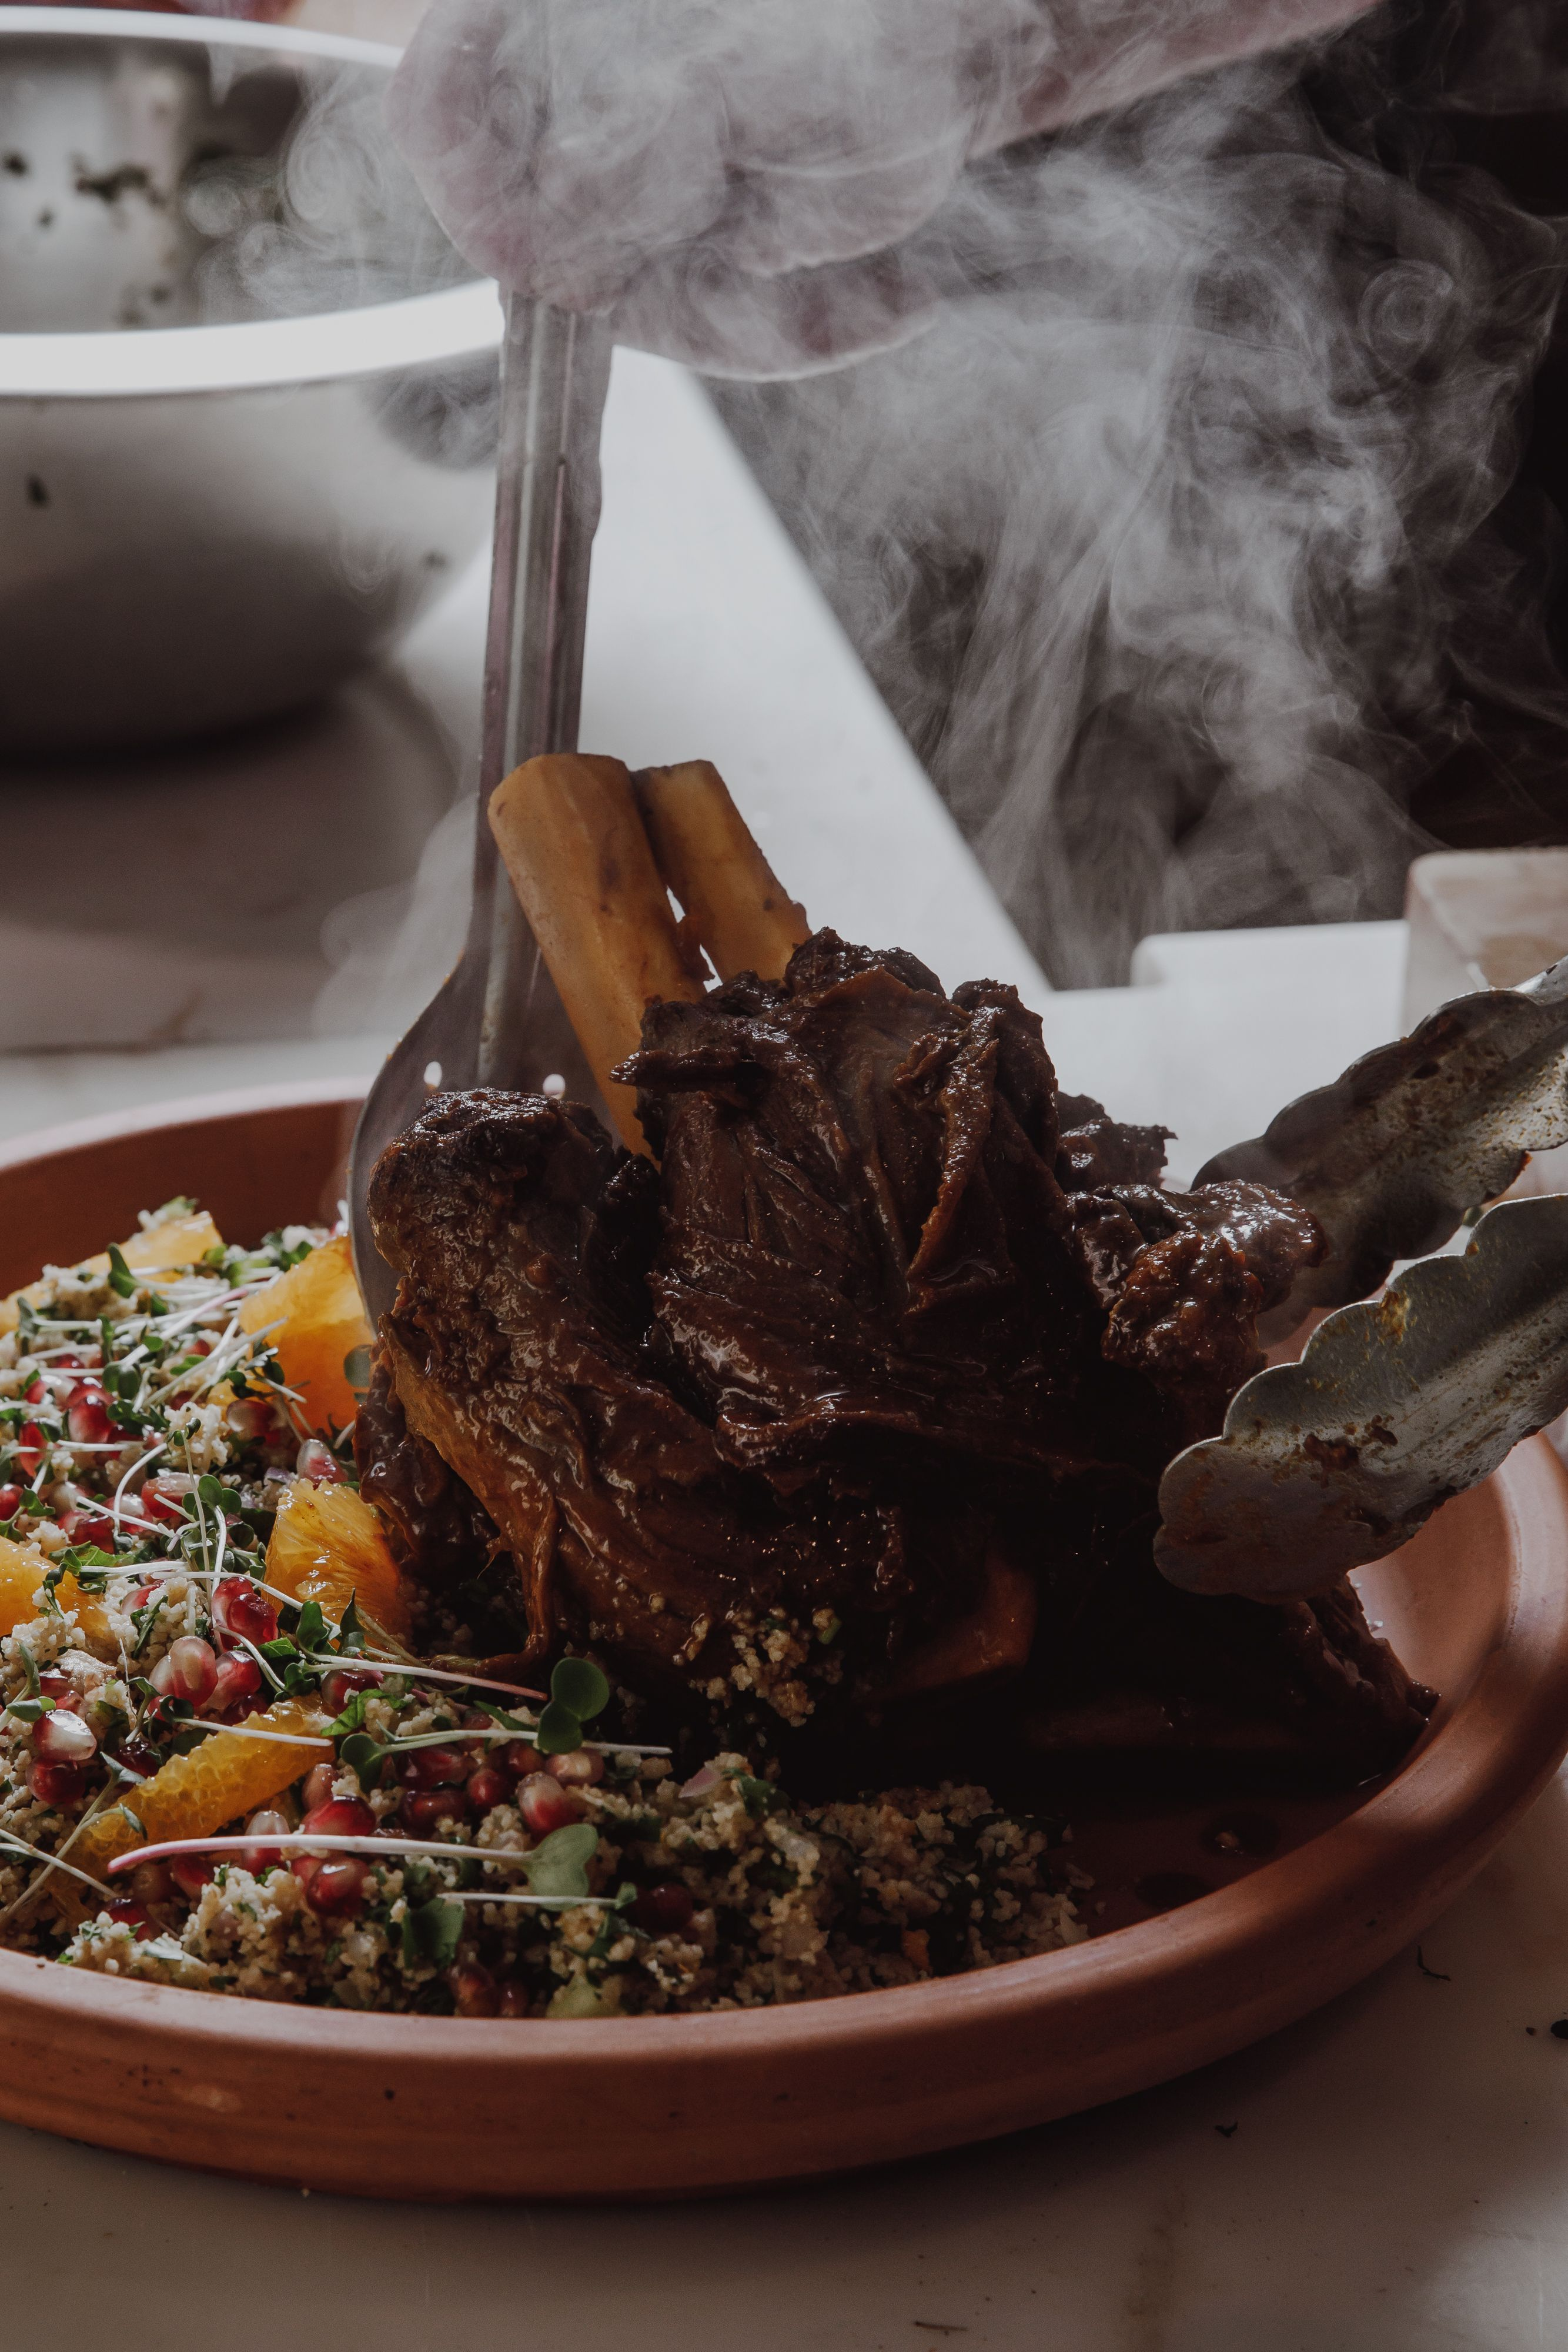 Venison Tagine being served with Cous cous on plate